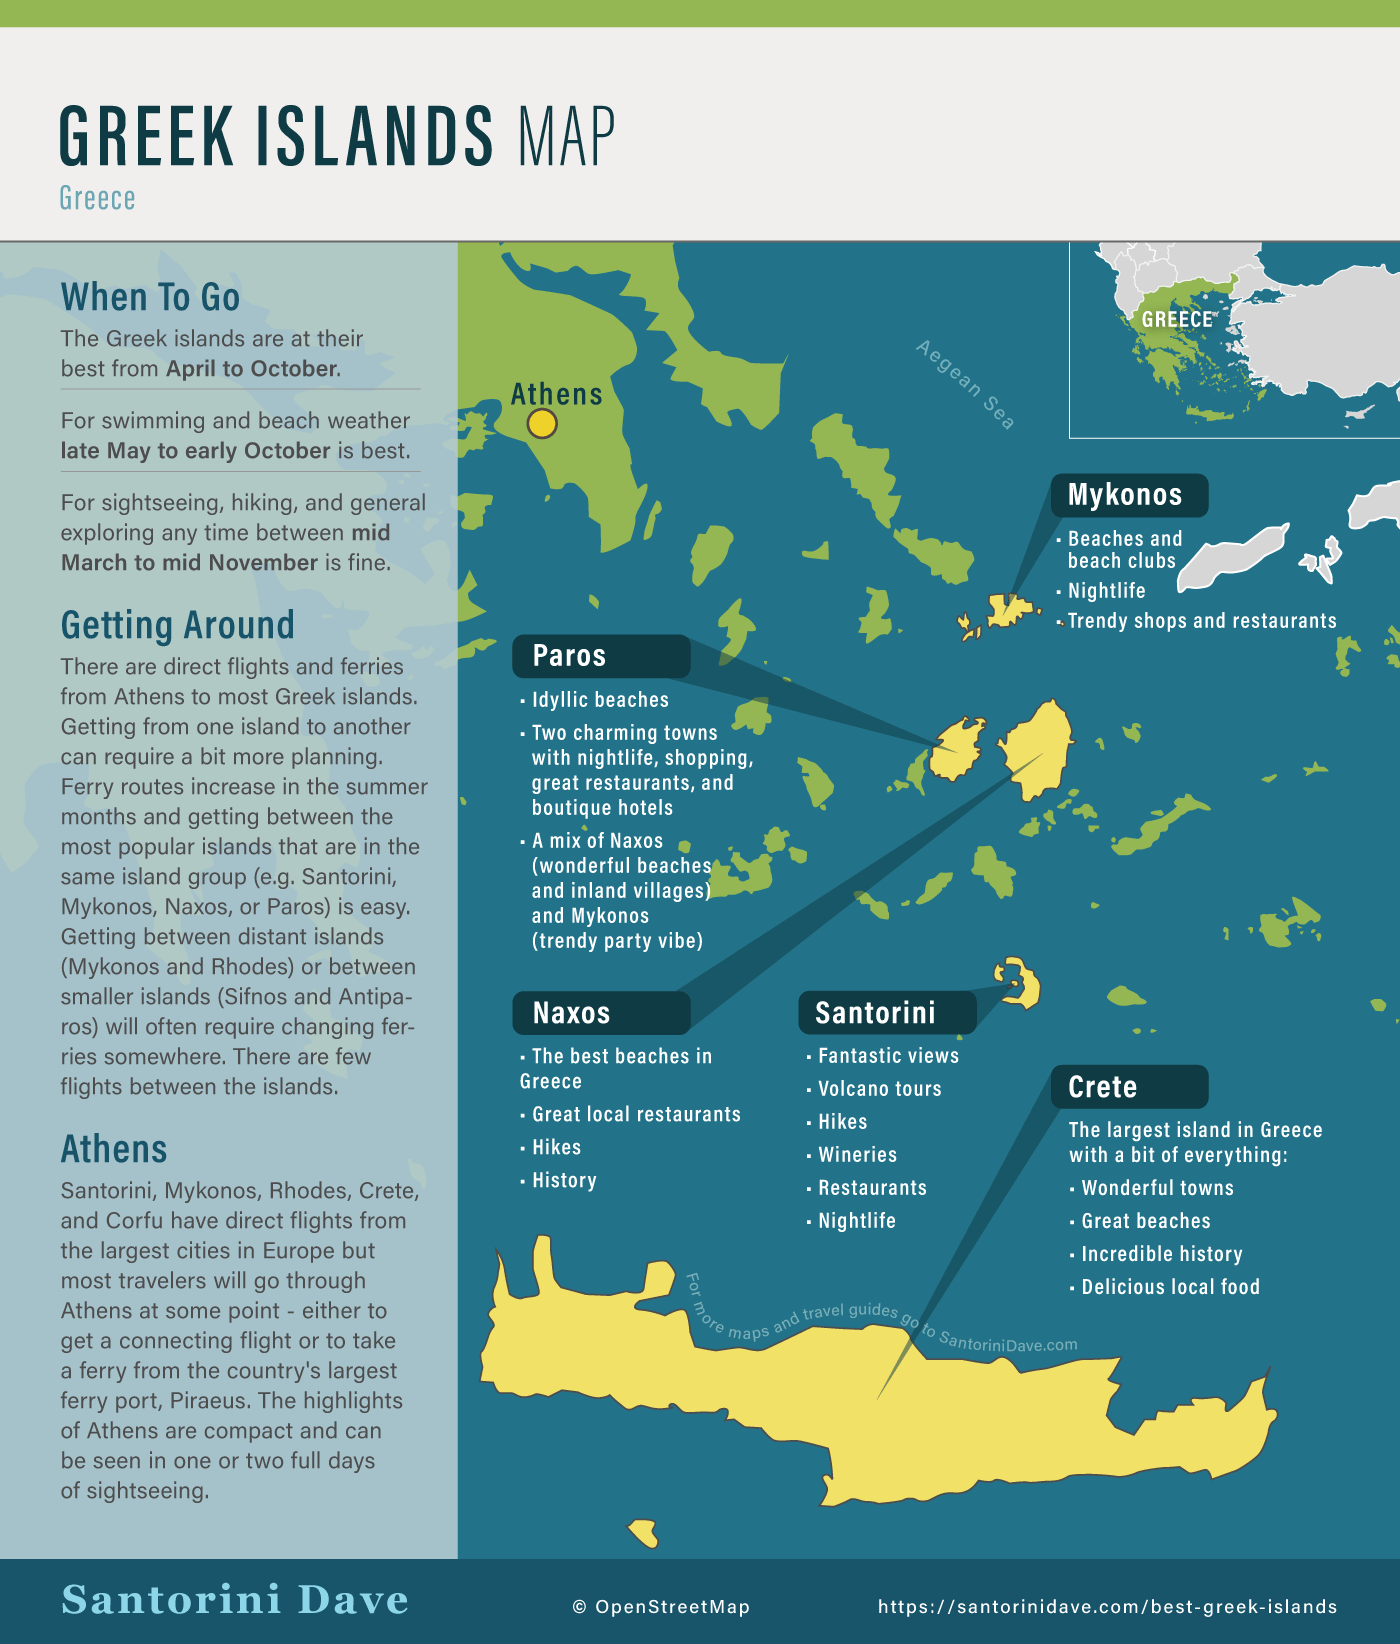 Map showing the best Greek Islands to visit that are easy to get to from Athens